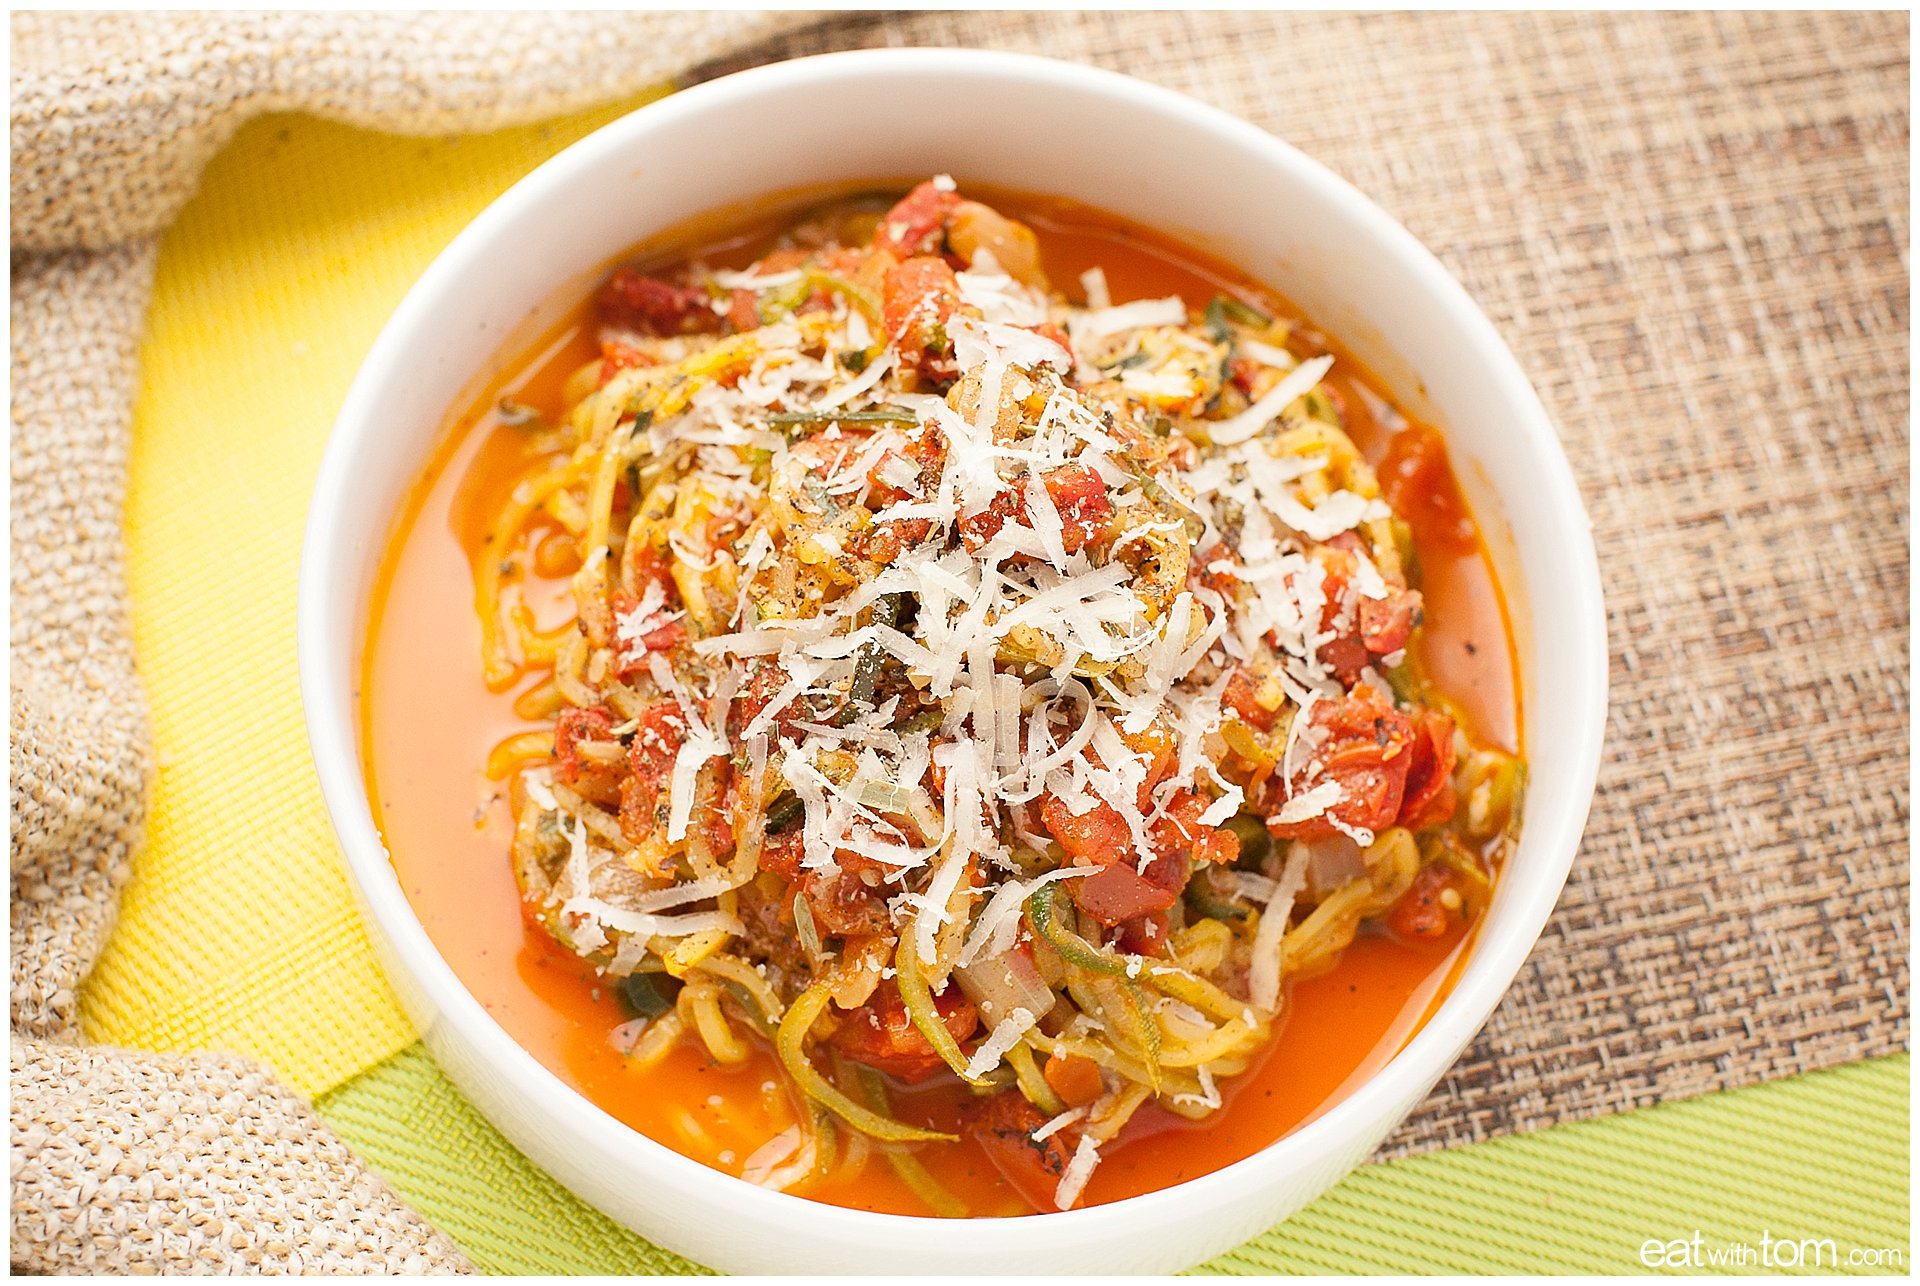 spiralizer recipe for homemade spaghetti sauce with herbs Zucchini vegetable noodle recipe main dish with pictures